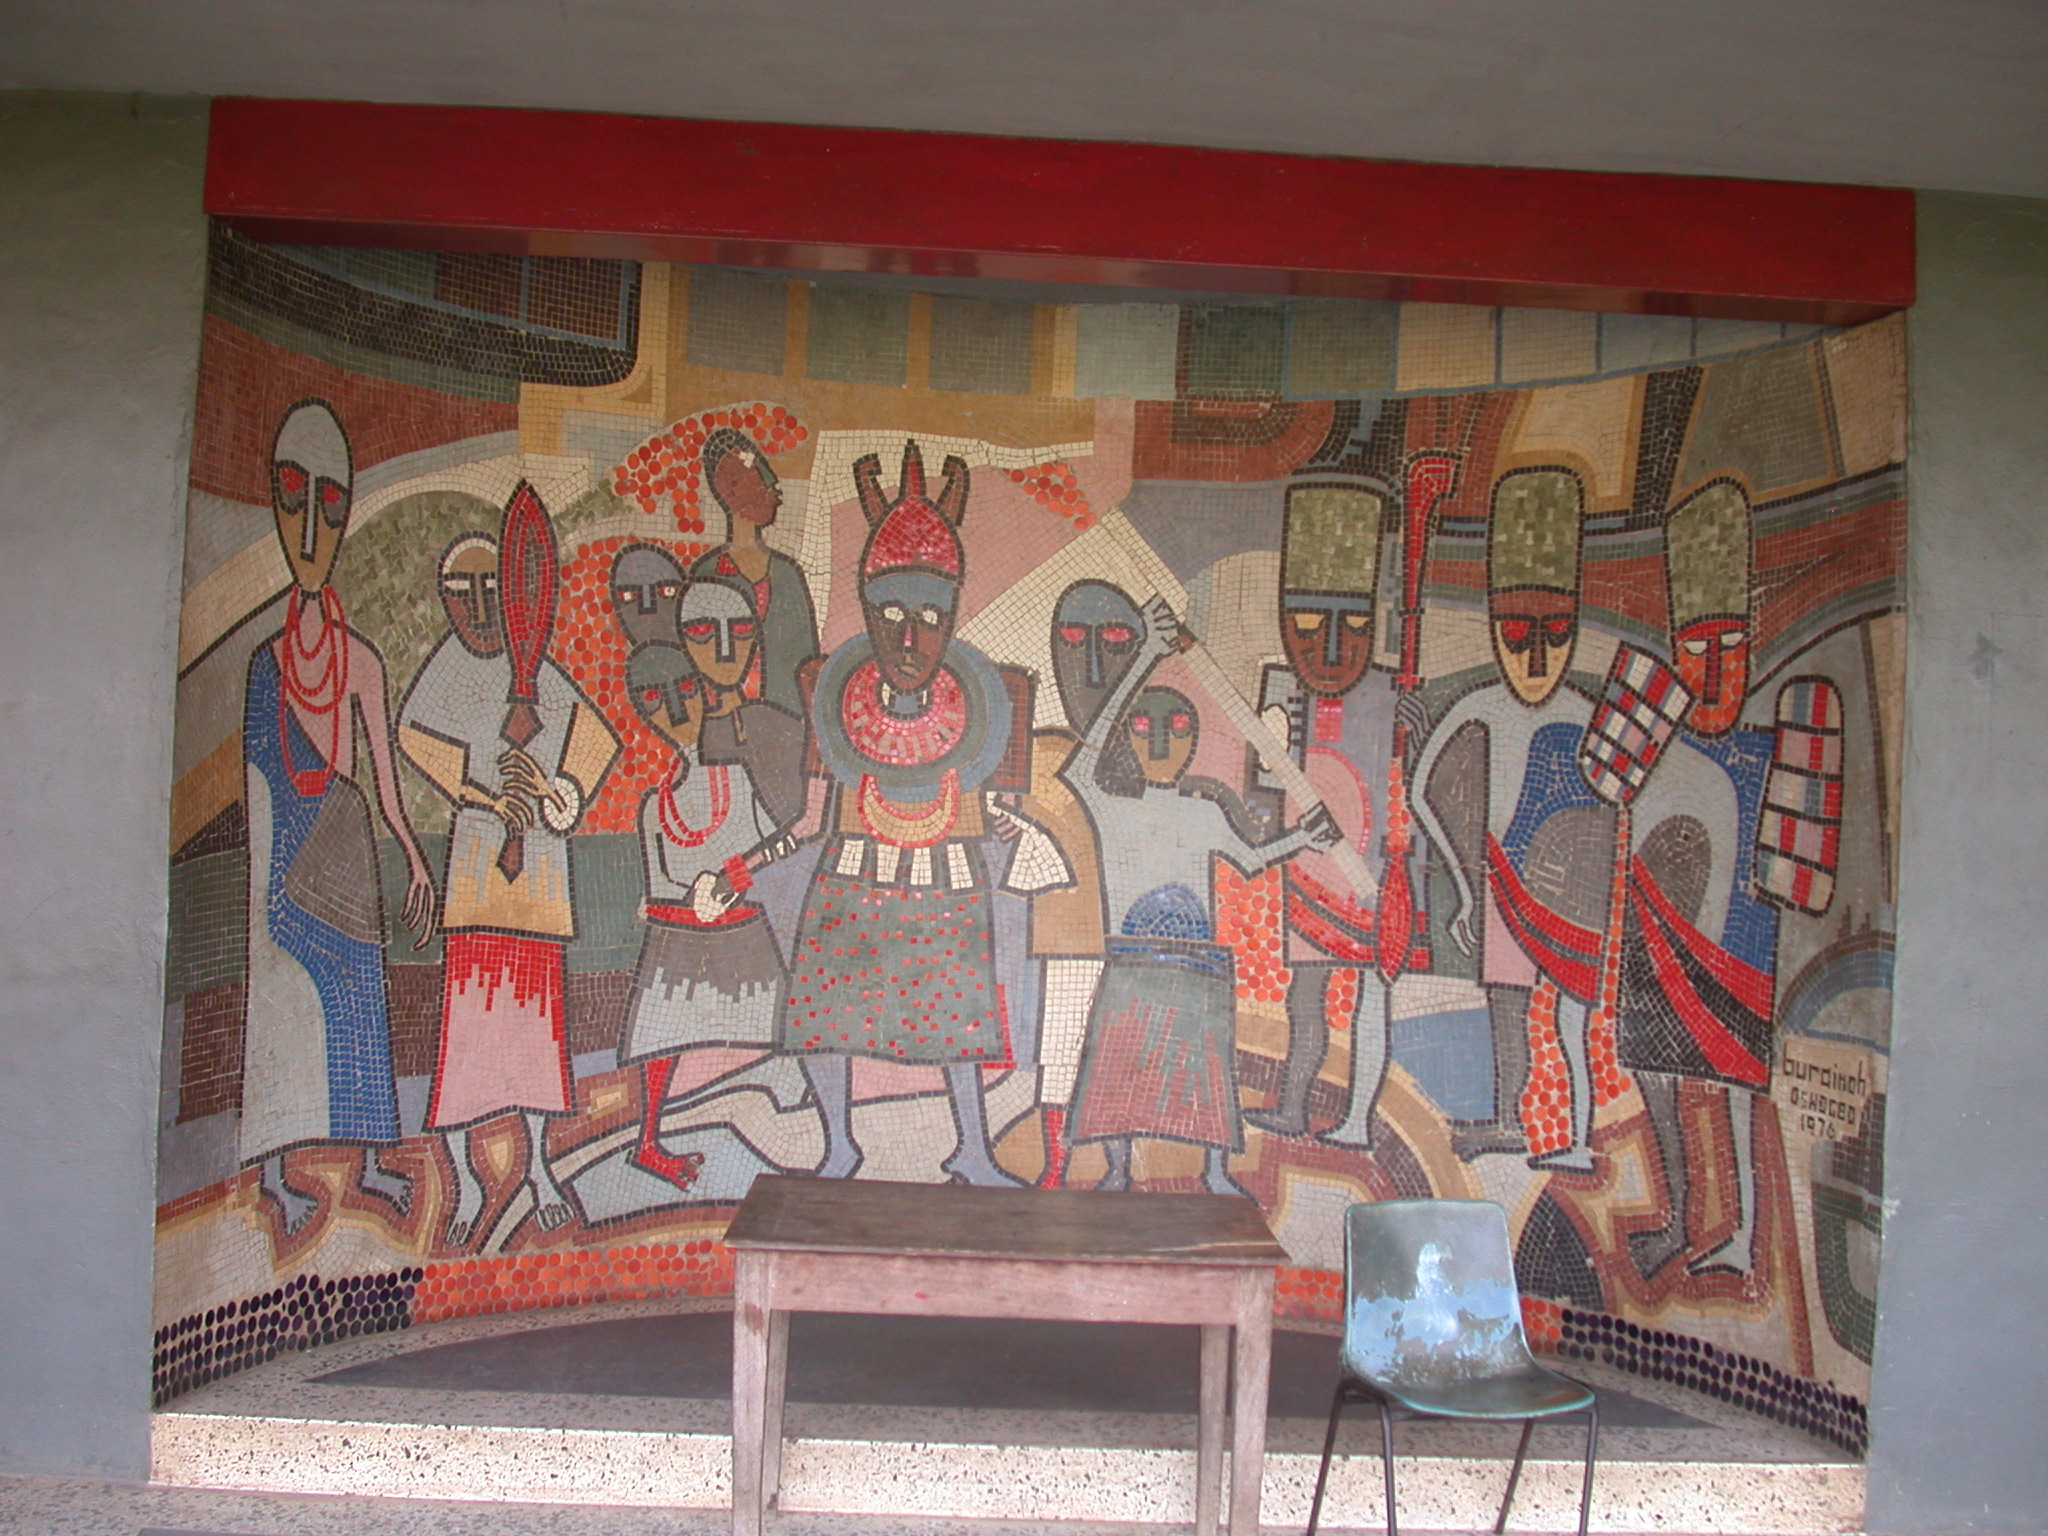 Mosaic at Entrance to Benin National Museum, Ring Road, Kings Square, Benin City, Nigeria